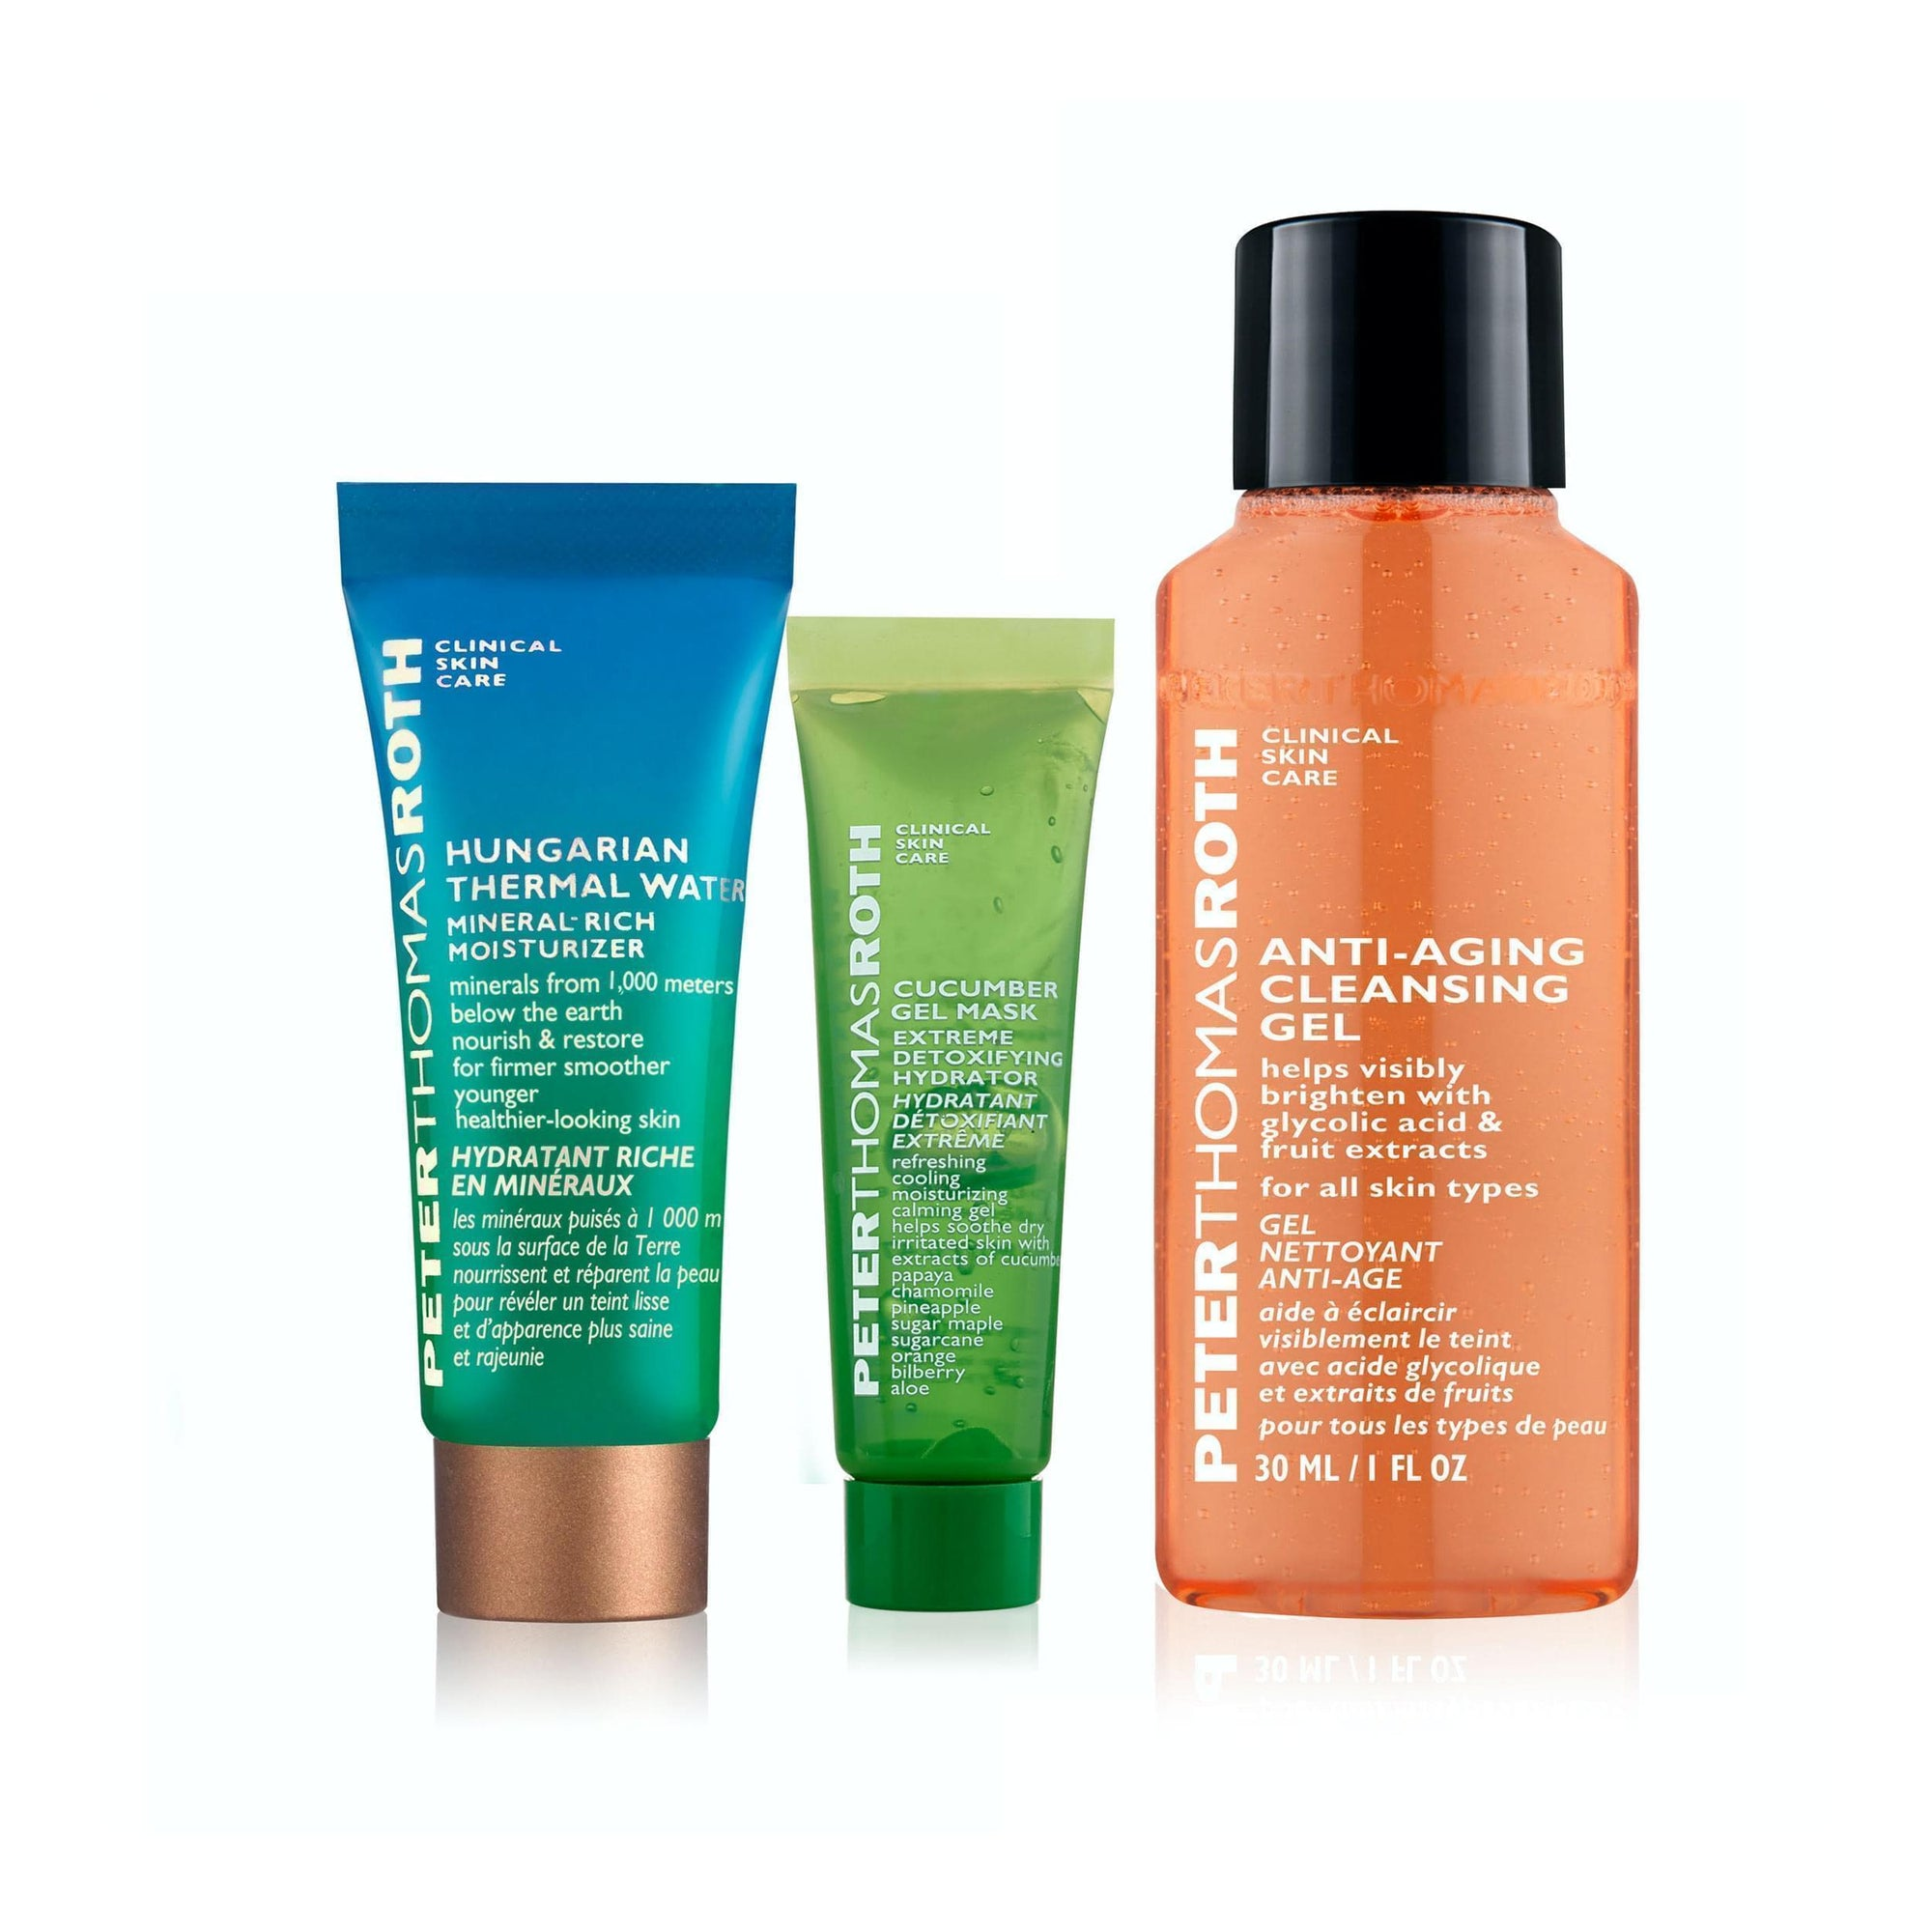 Receive a Peter Thomas Roth 3 Piece Winter Gift ($25 Value)